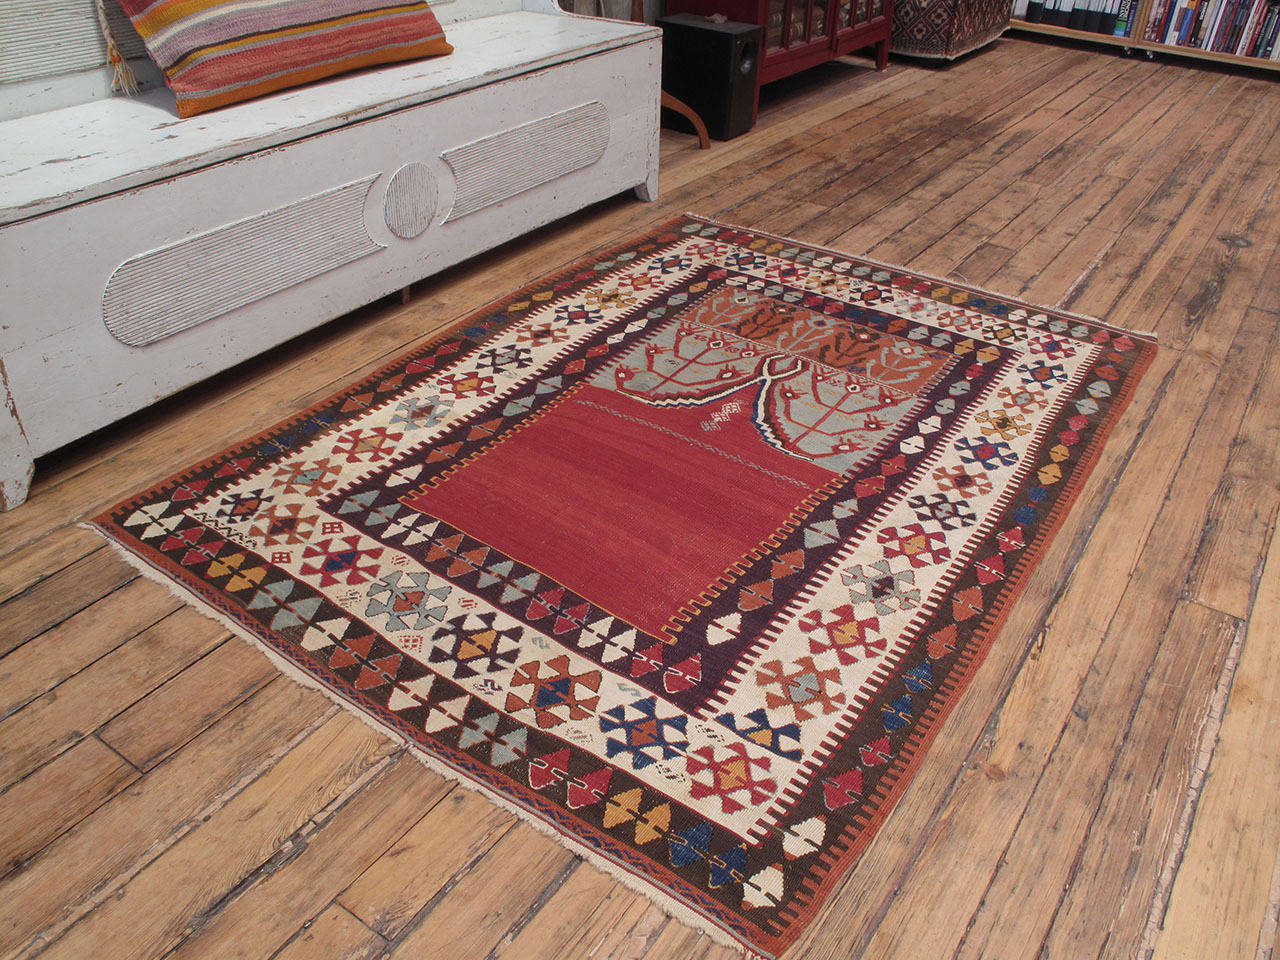 """A beautiful antique Kilim from Central Turkey featuring the ever-popular prayer arch, or """"mihrab,"""" design. The dramatic empty center in red is topped with a stepped arch ending in Horn-like shapes, flanked by highly stylized tulips, the"""